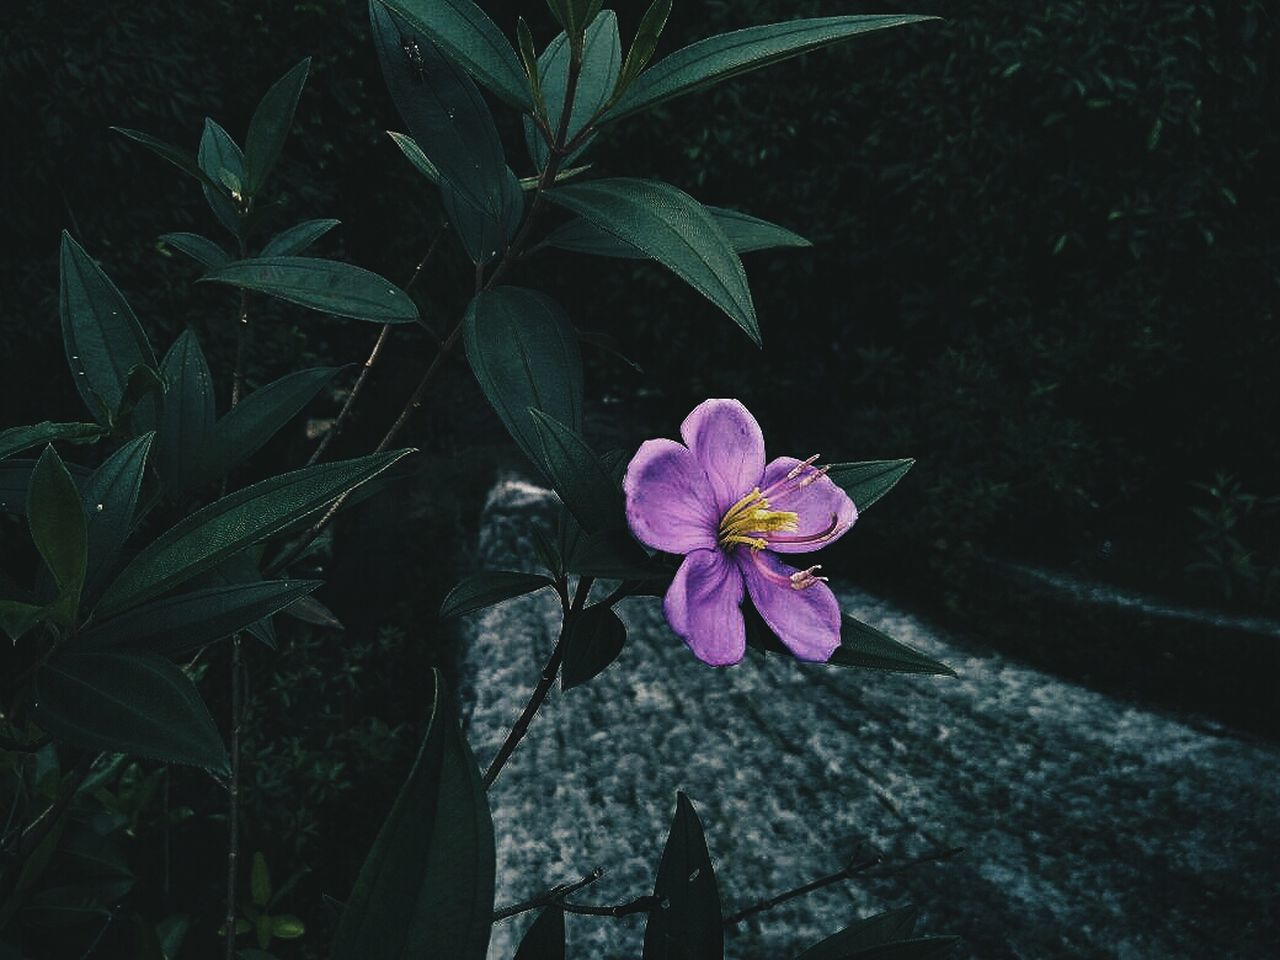 Dangerous woman First Eyeem Photo Outdoors Flower Darktones Nature Waterfall EyeEmNewHere